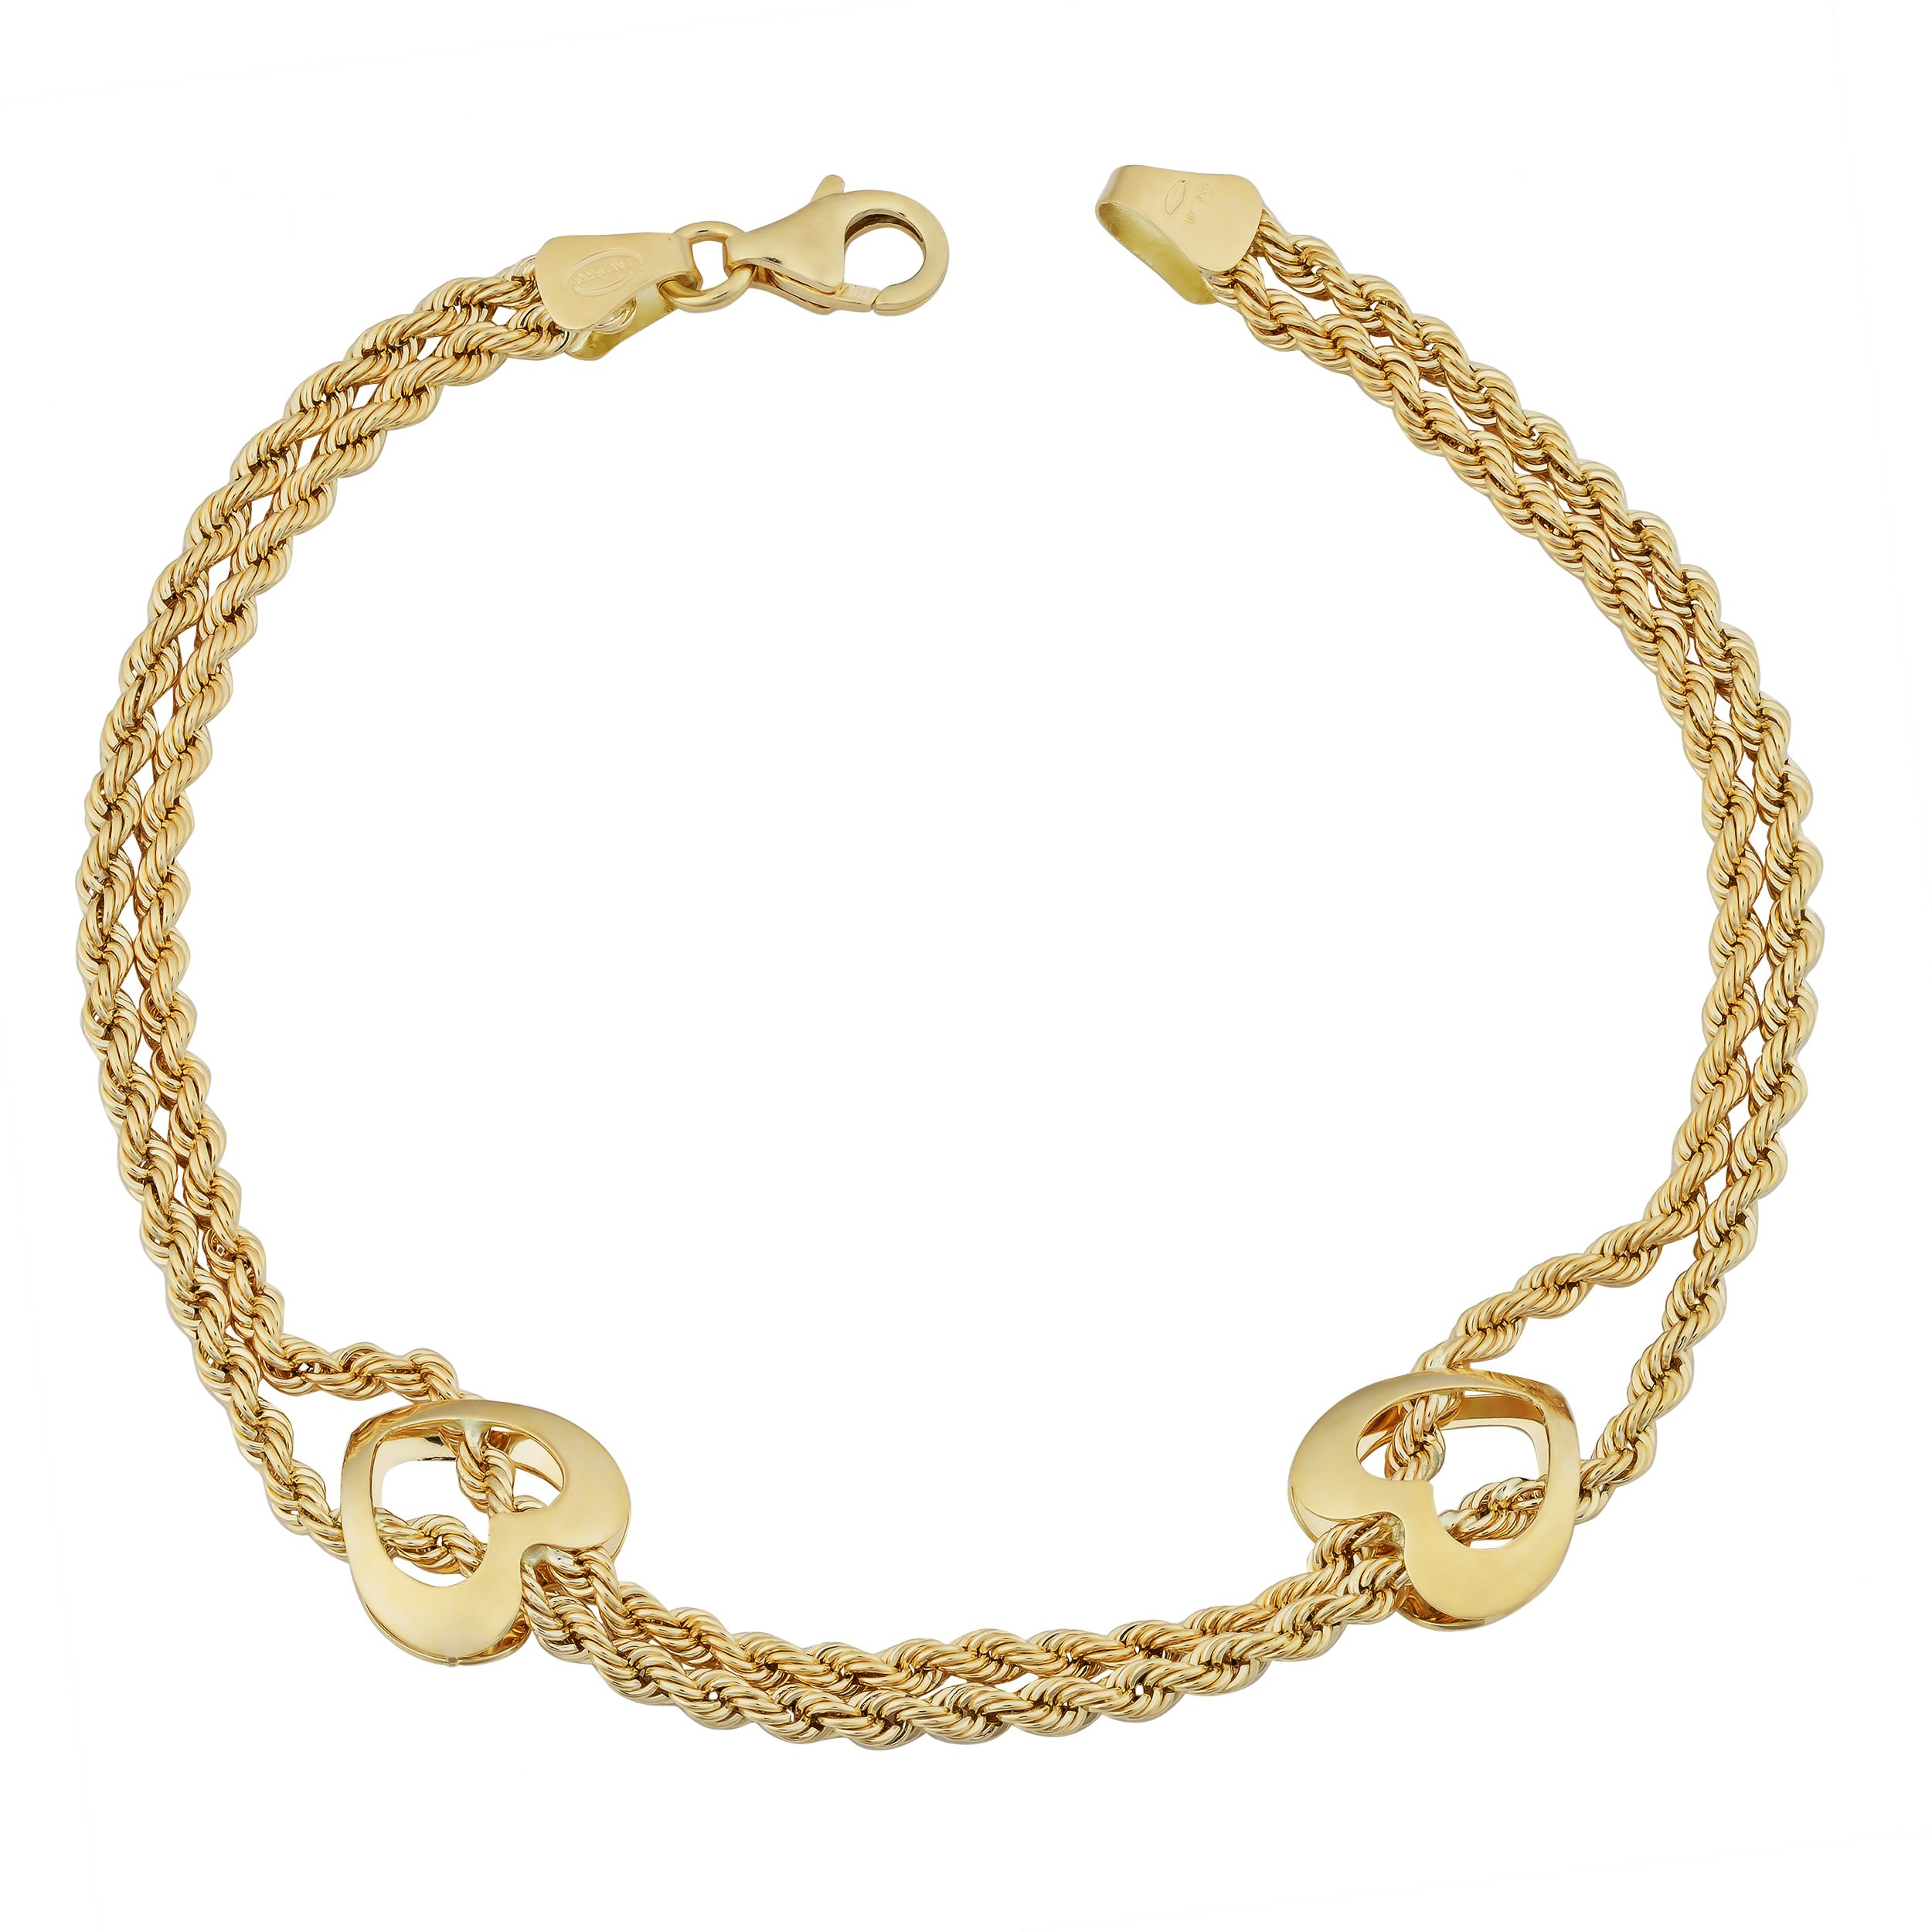 18k Yellow Gold Italian Double Strand Rope With Hearts Bracelet (7.5 inches)